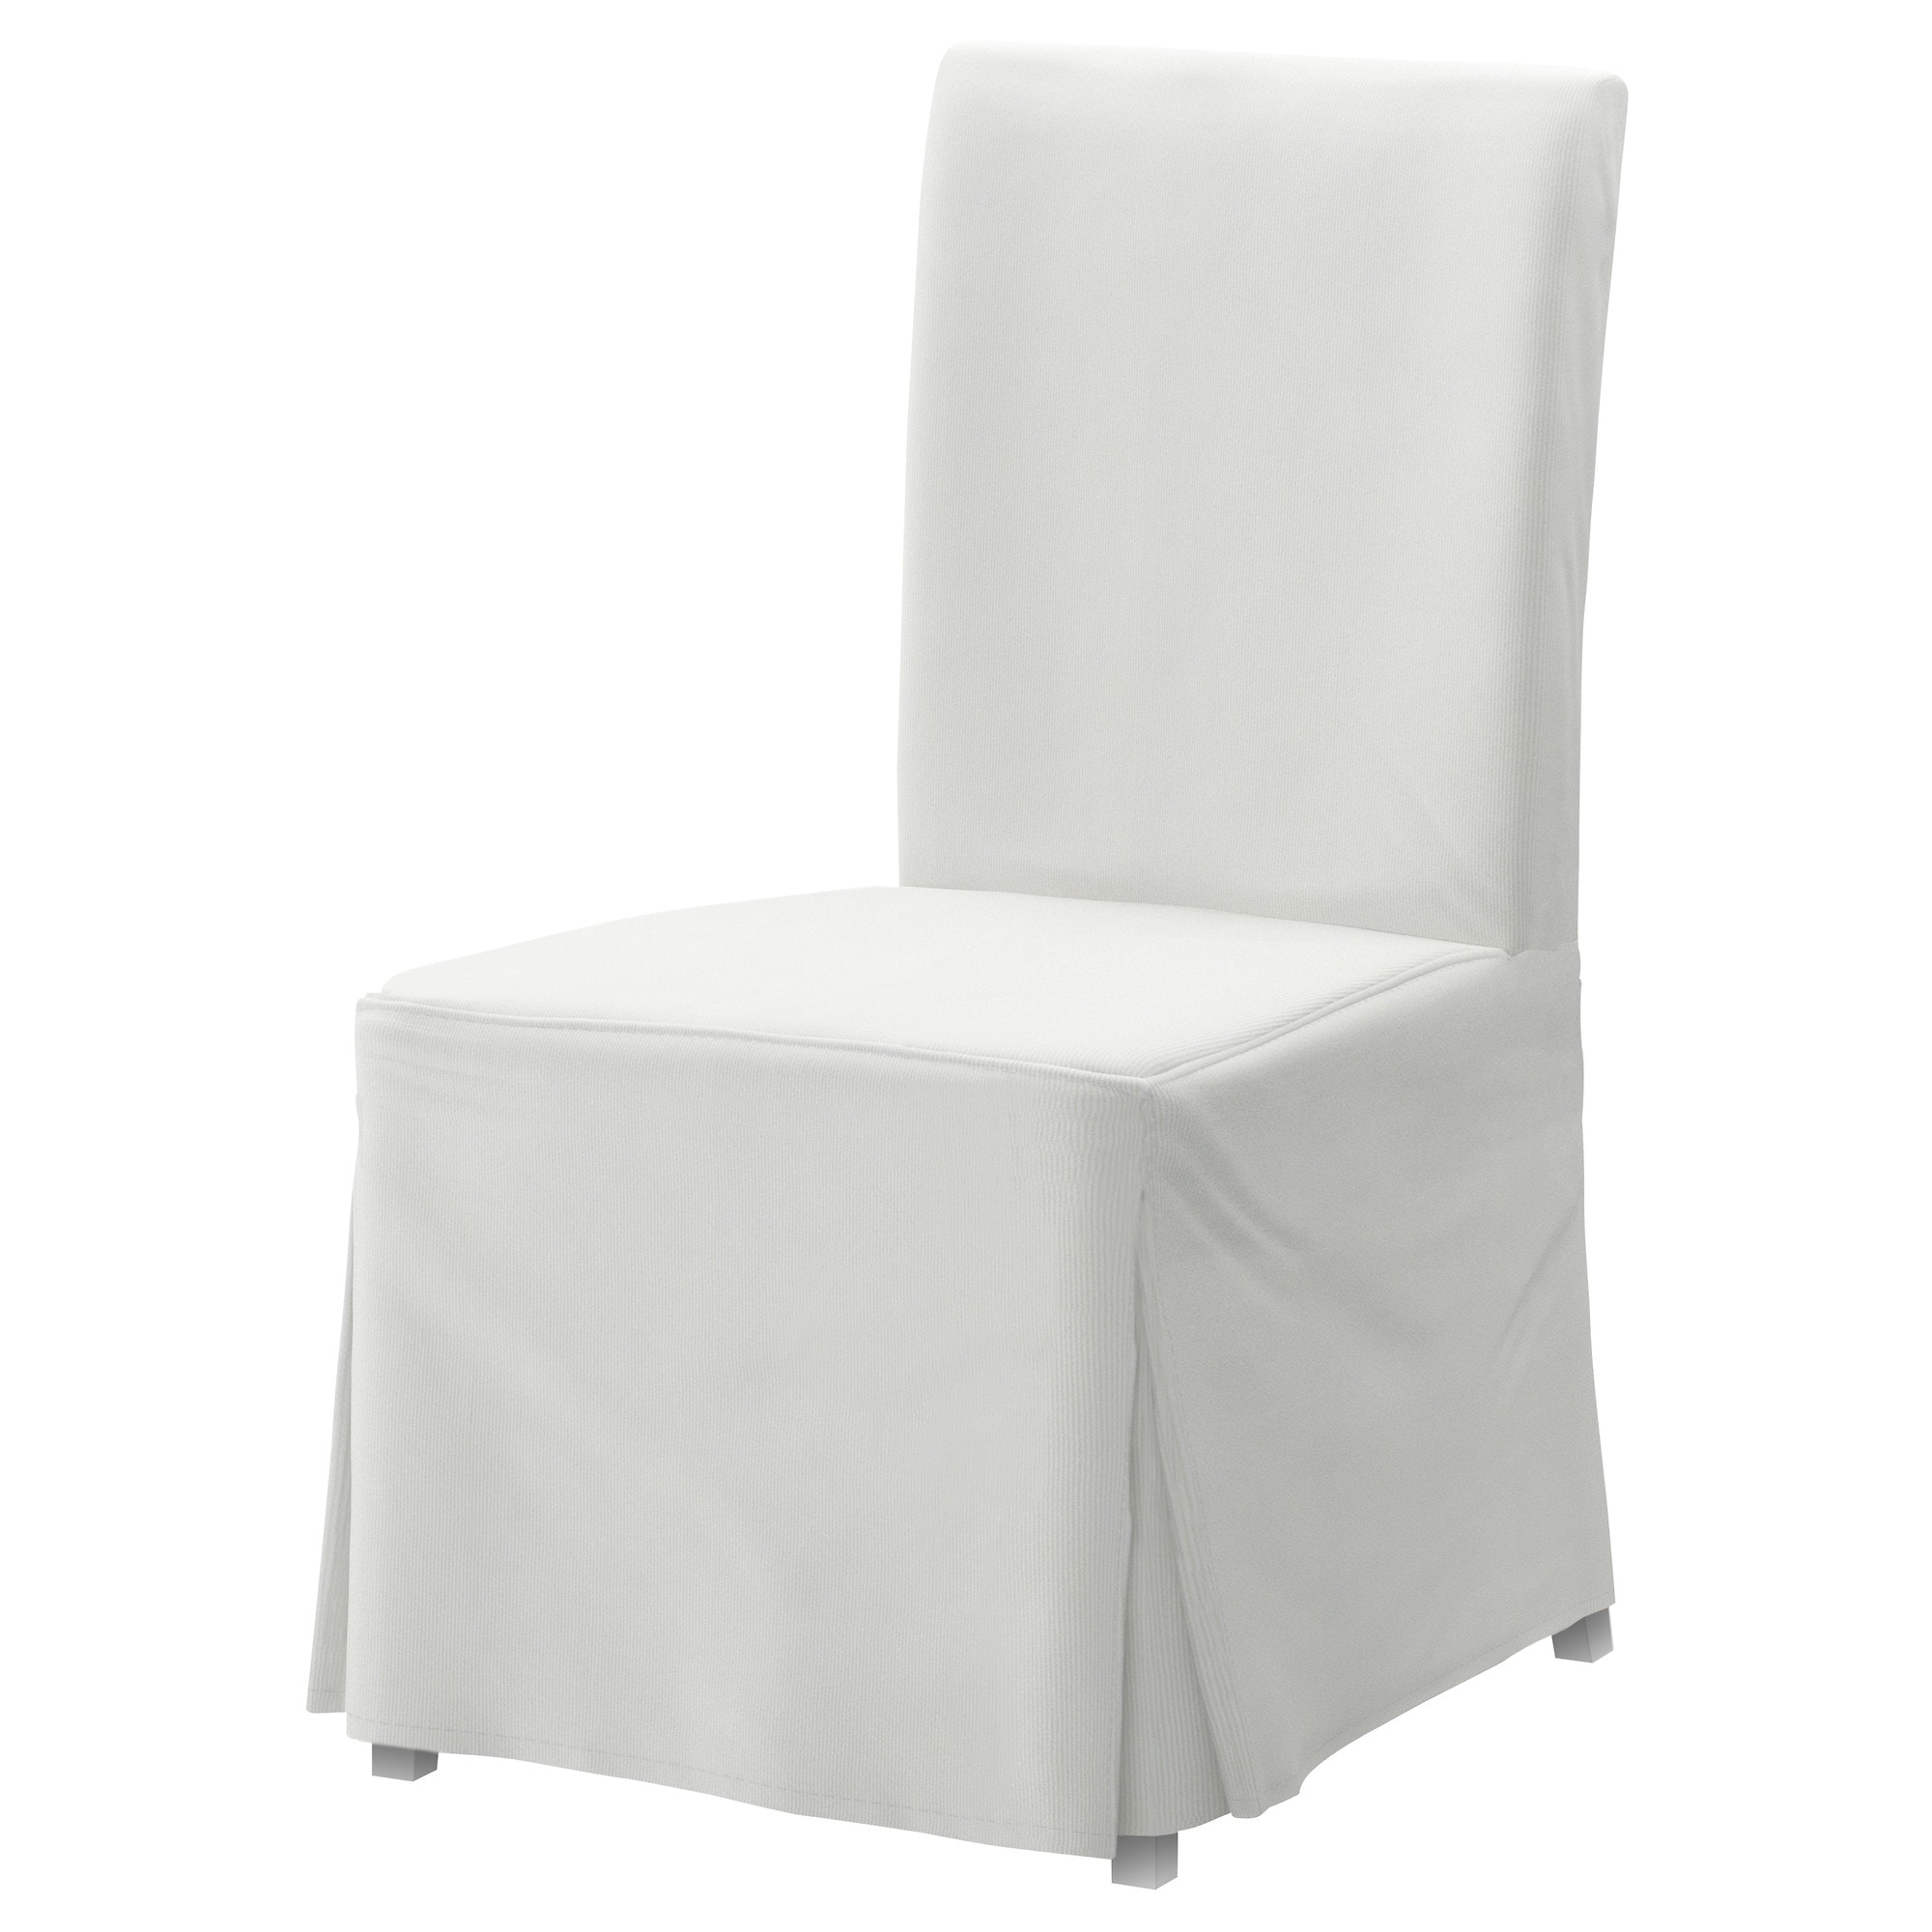 Slip Cover For Chair Henriksdal Chair With Long Cover White Blekinge White